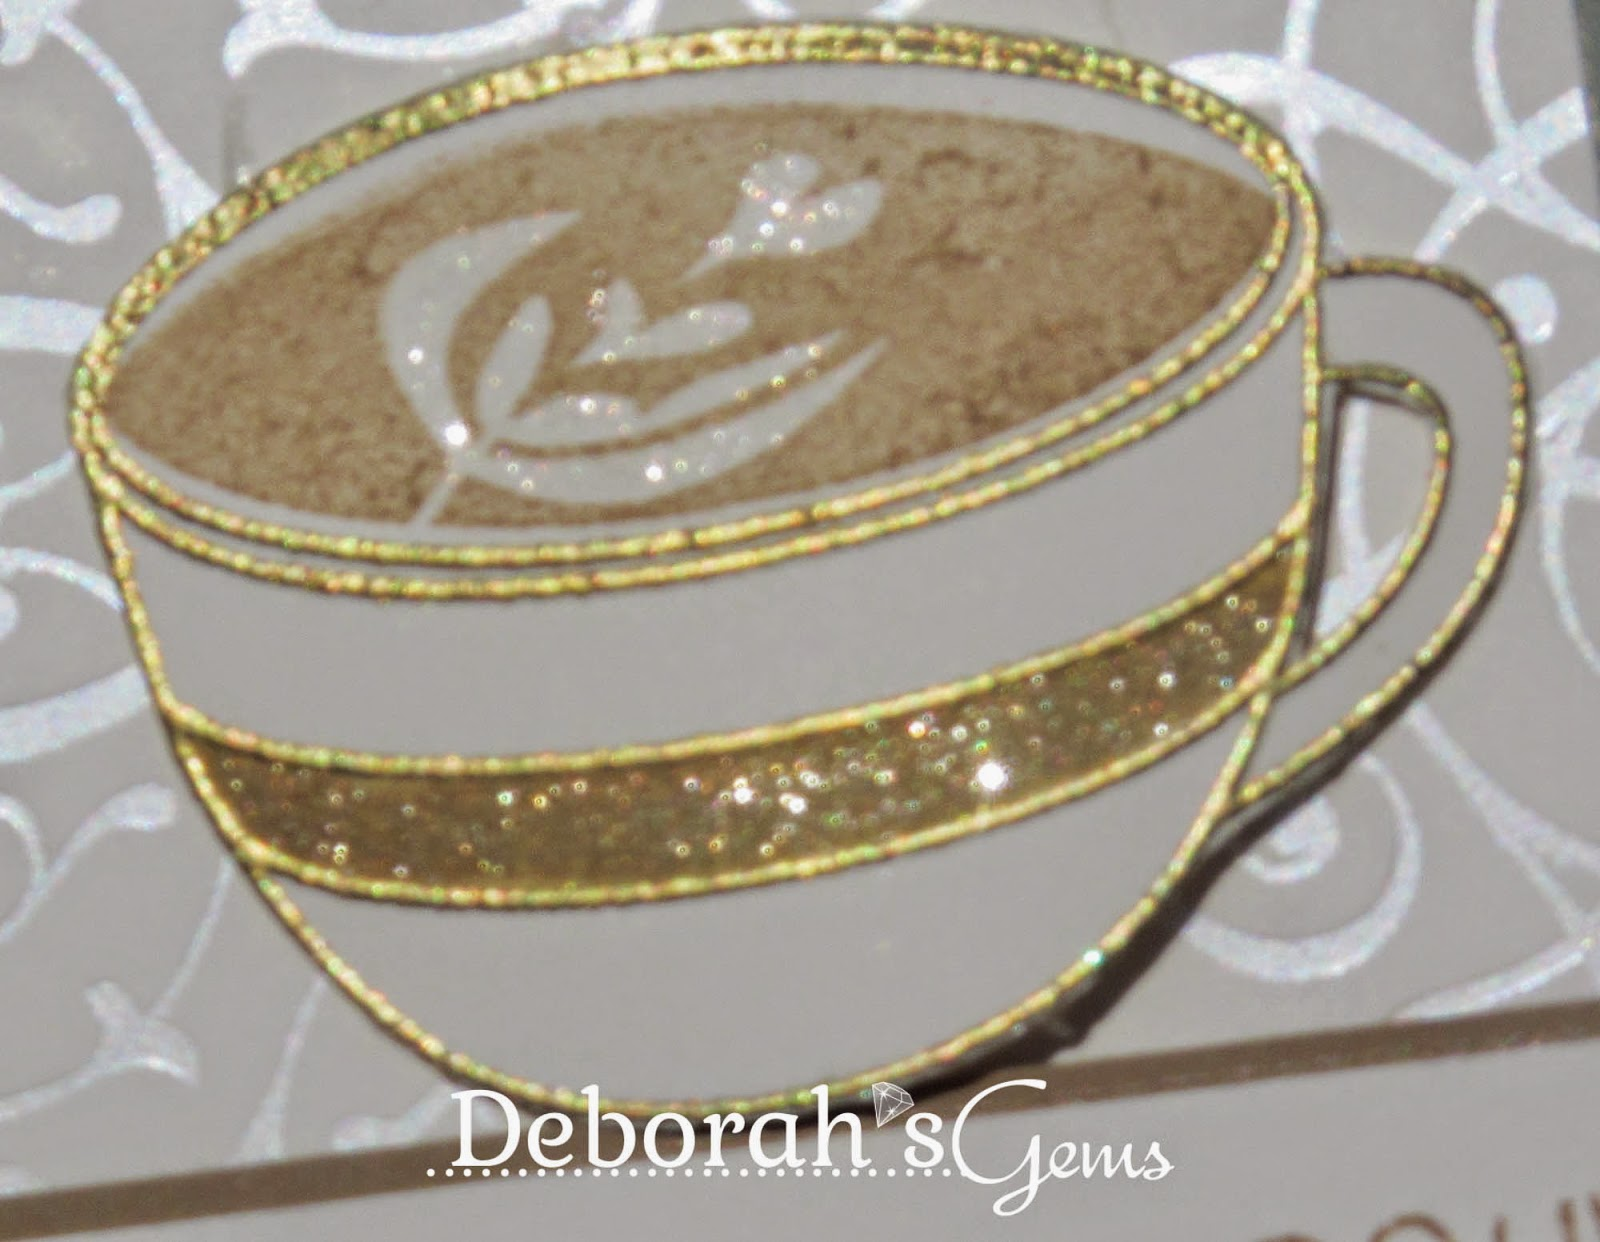 Special Delivery Detail - photo by Deborah Frings - Deborah's Gems